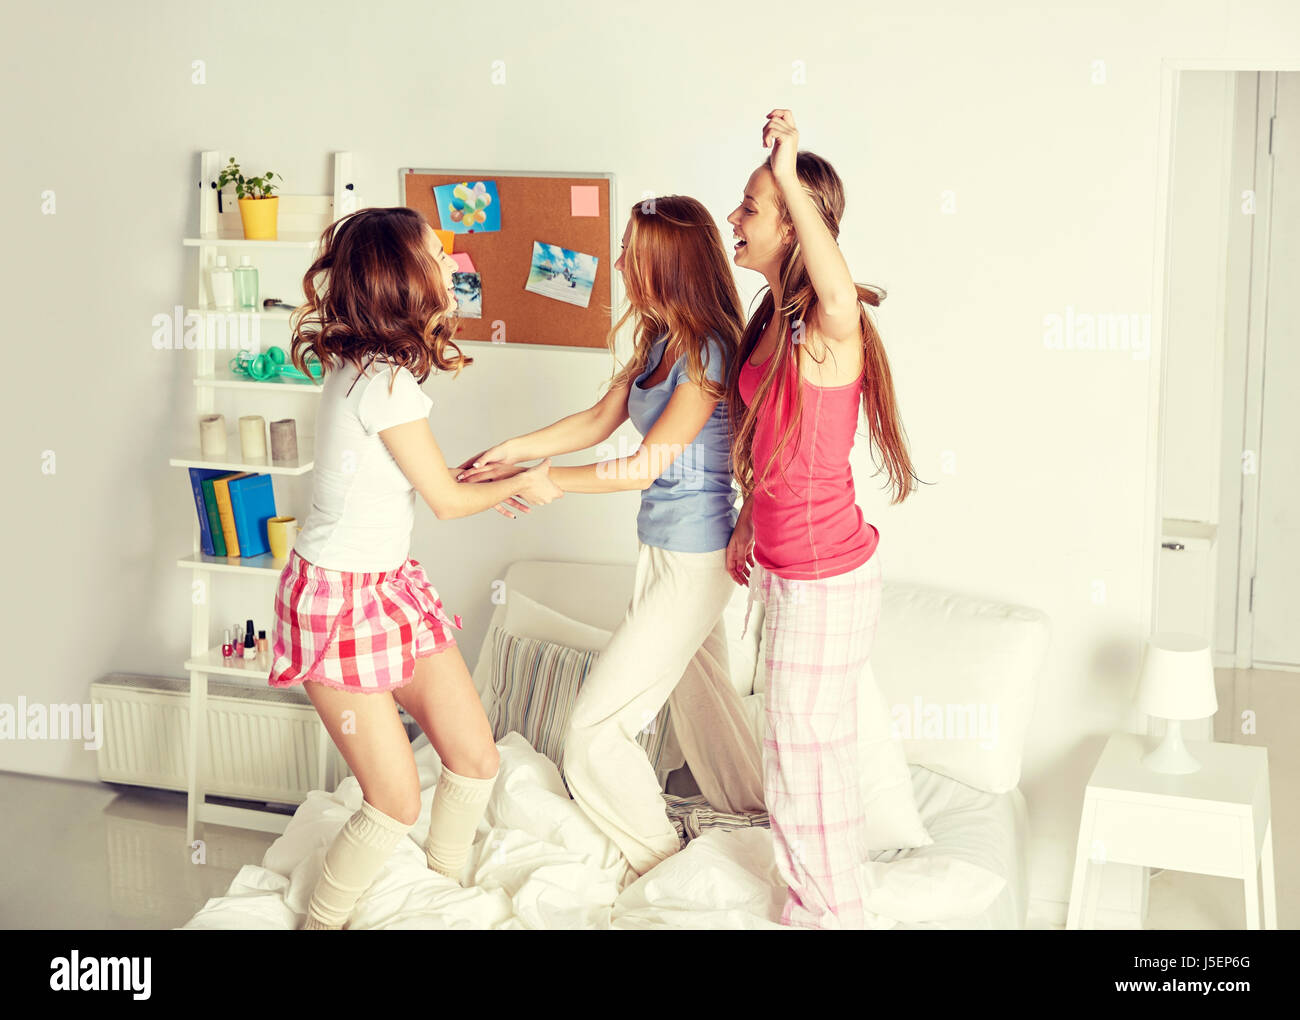 Teen girl pajama party girls lesbians